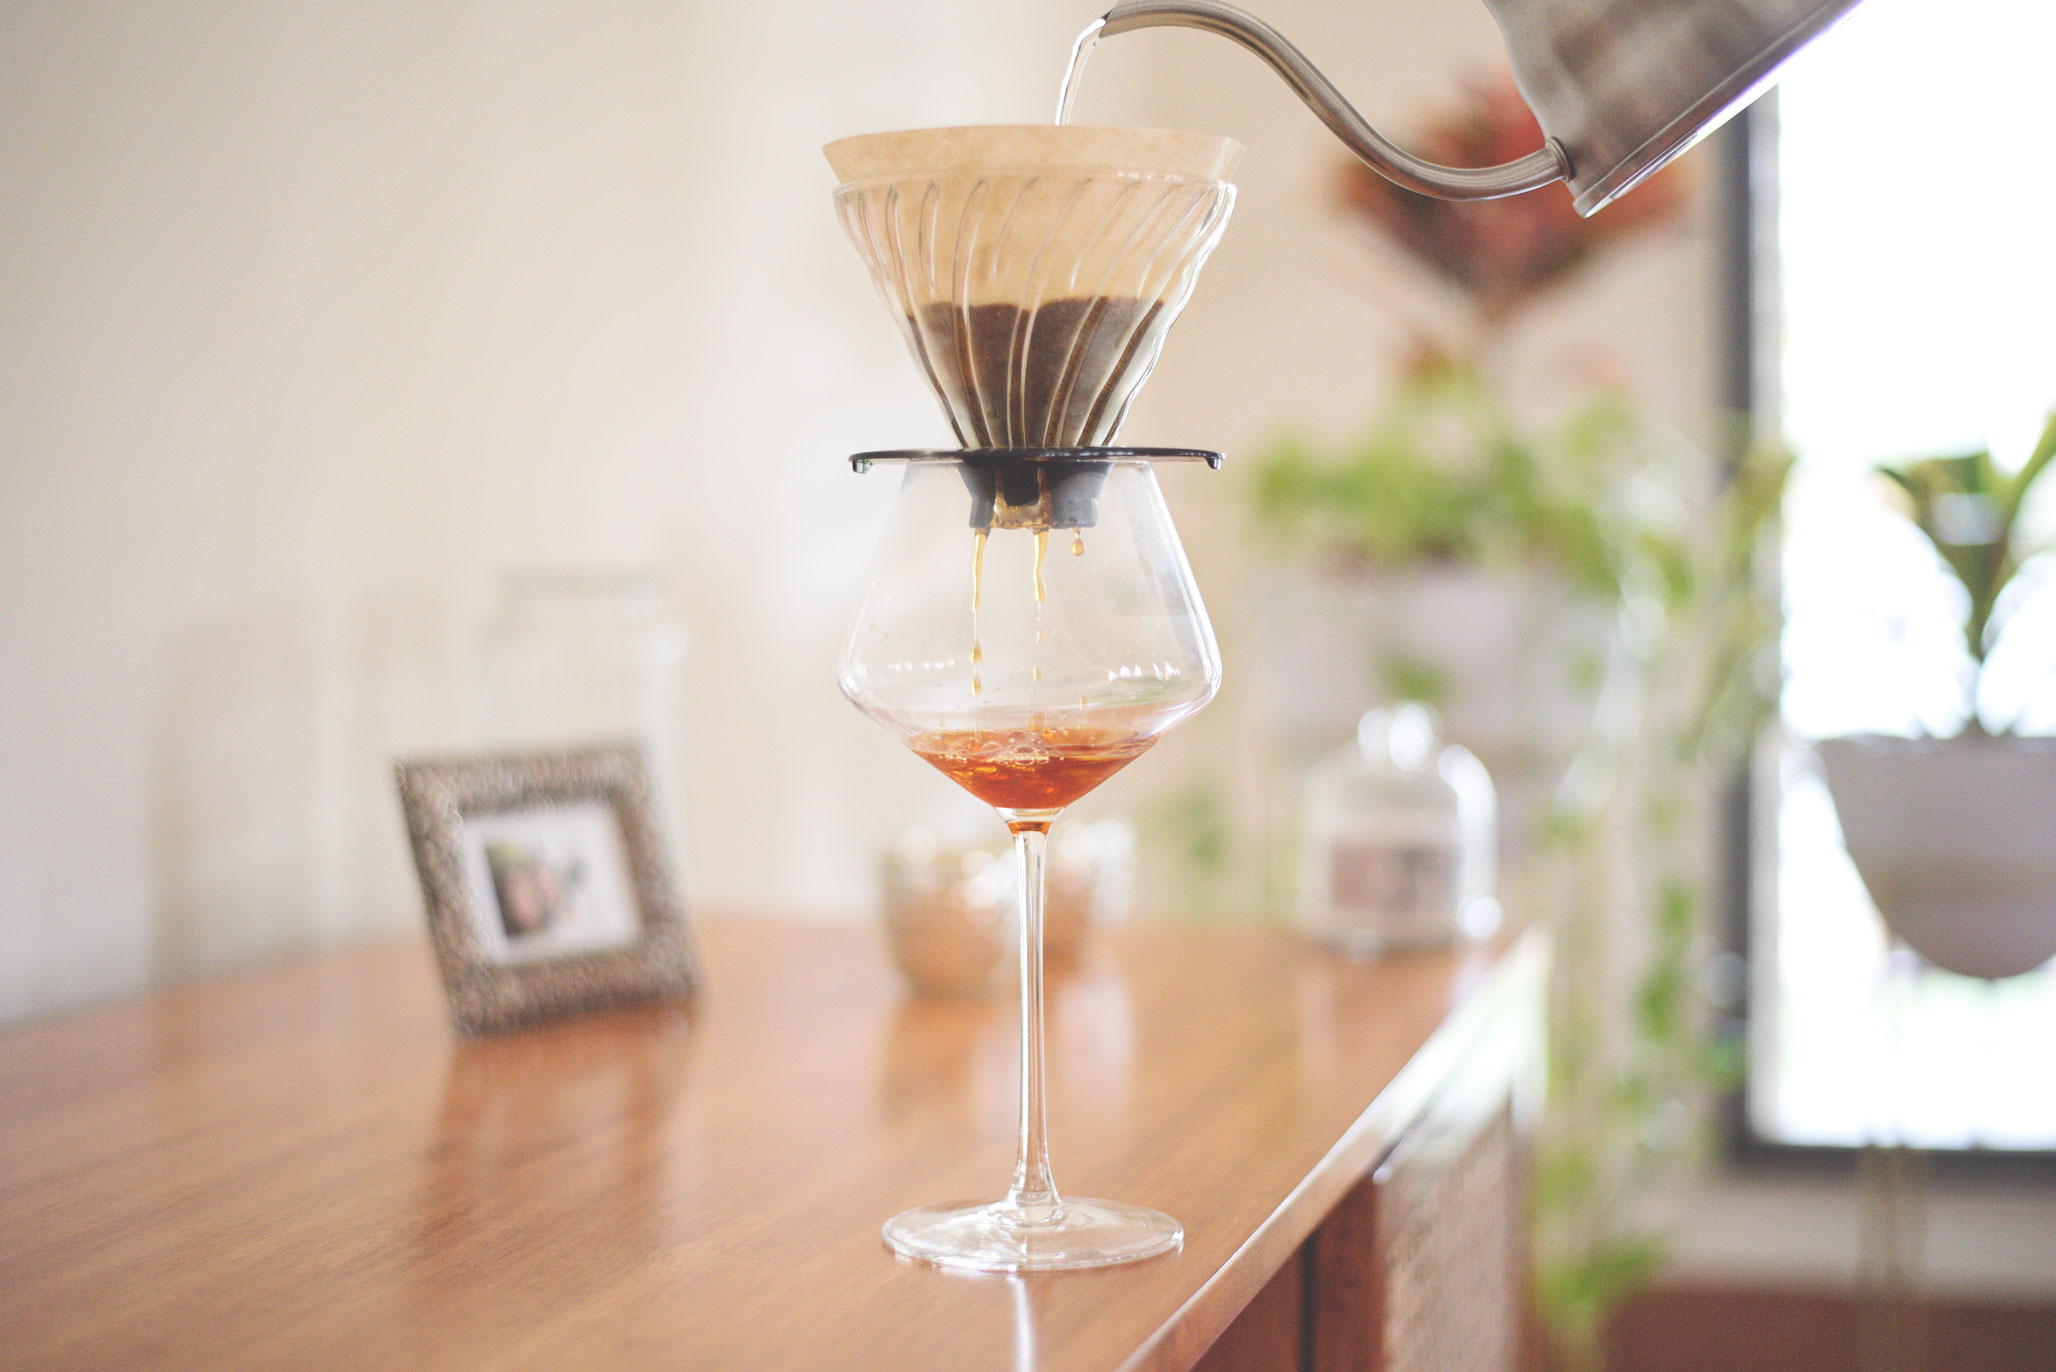 Coffee brewing into a wine glass